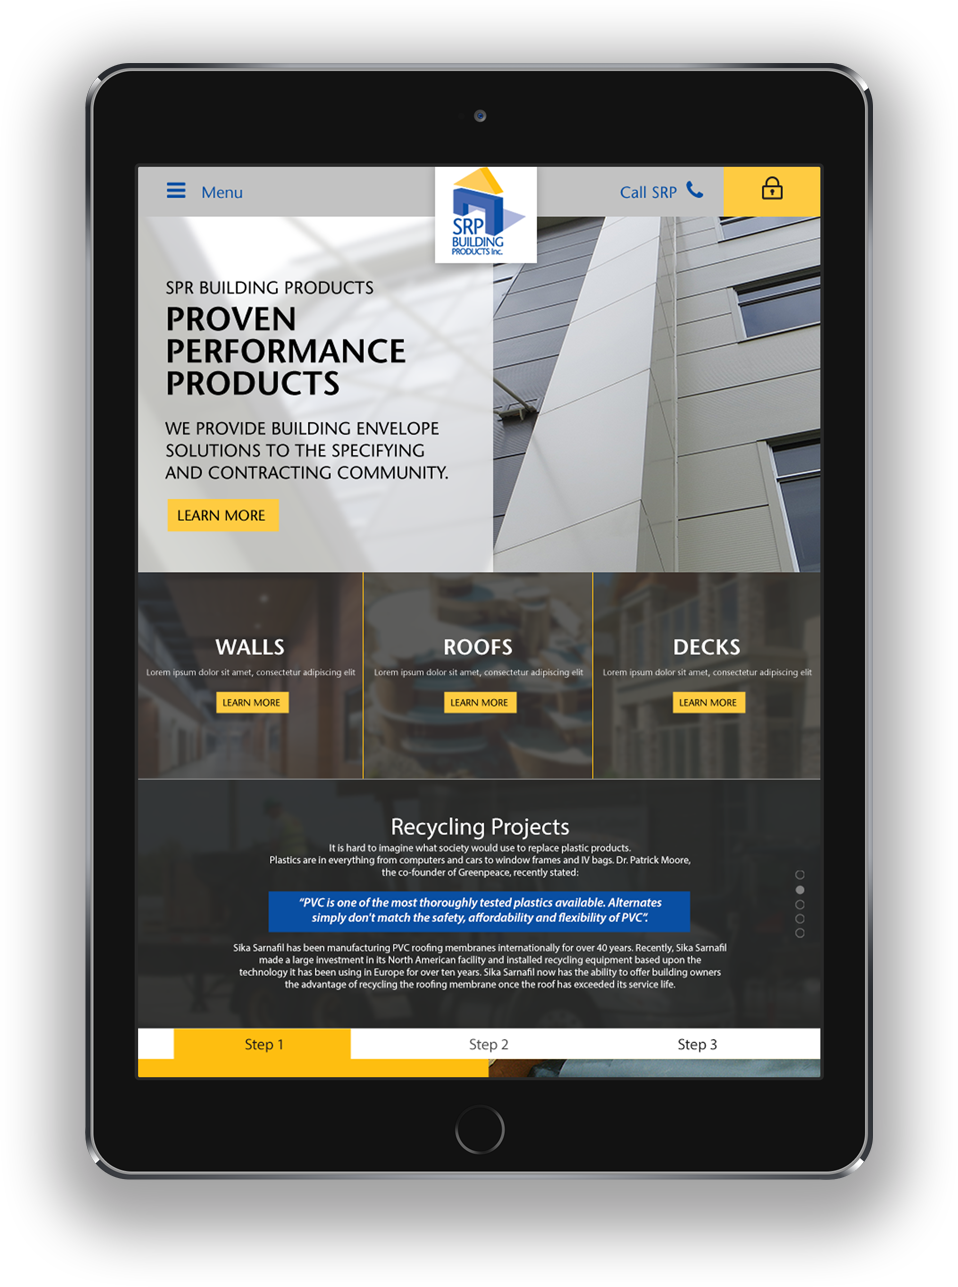 SRP responsive web design for tablets